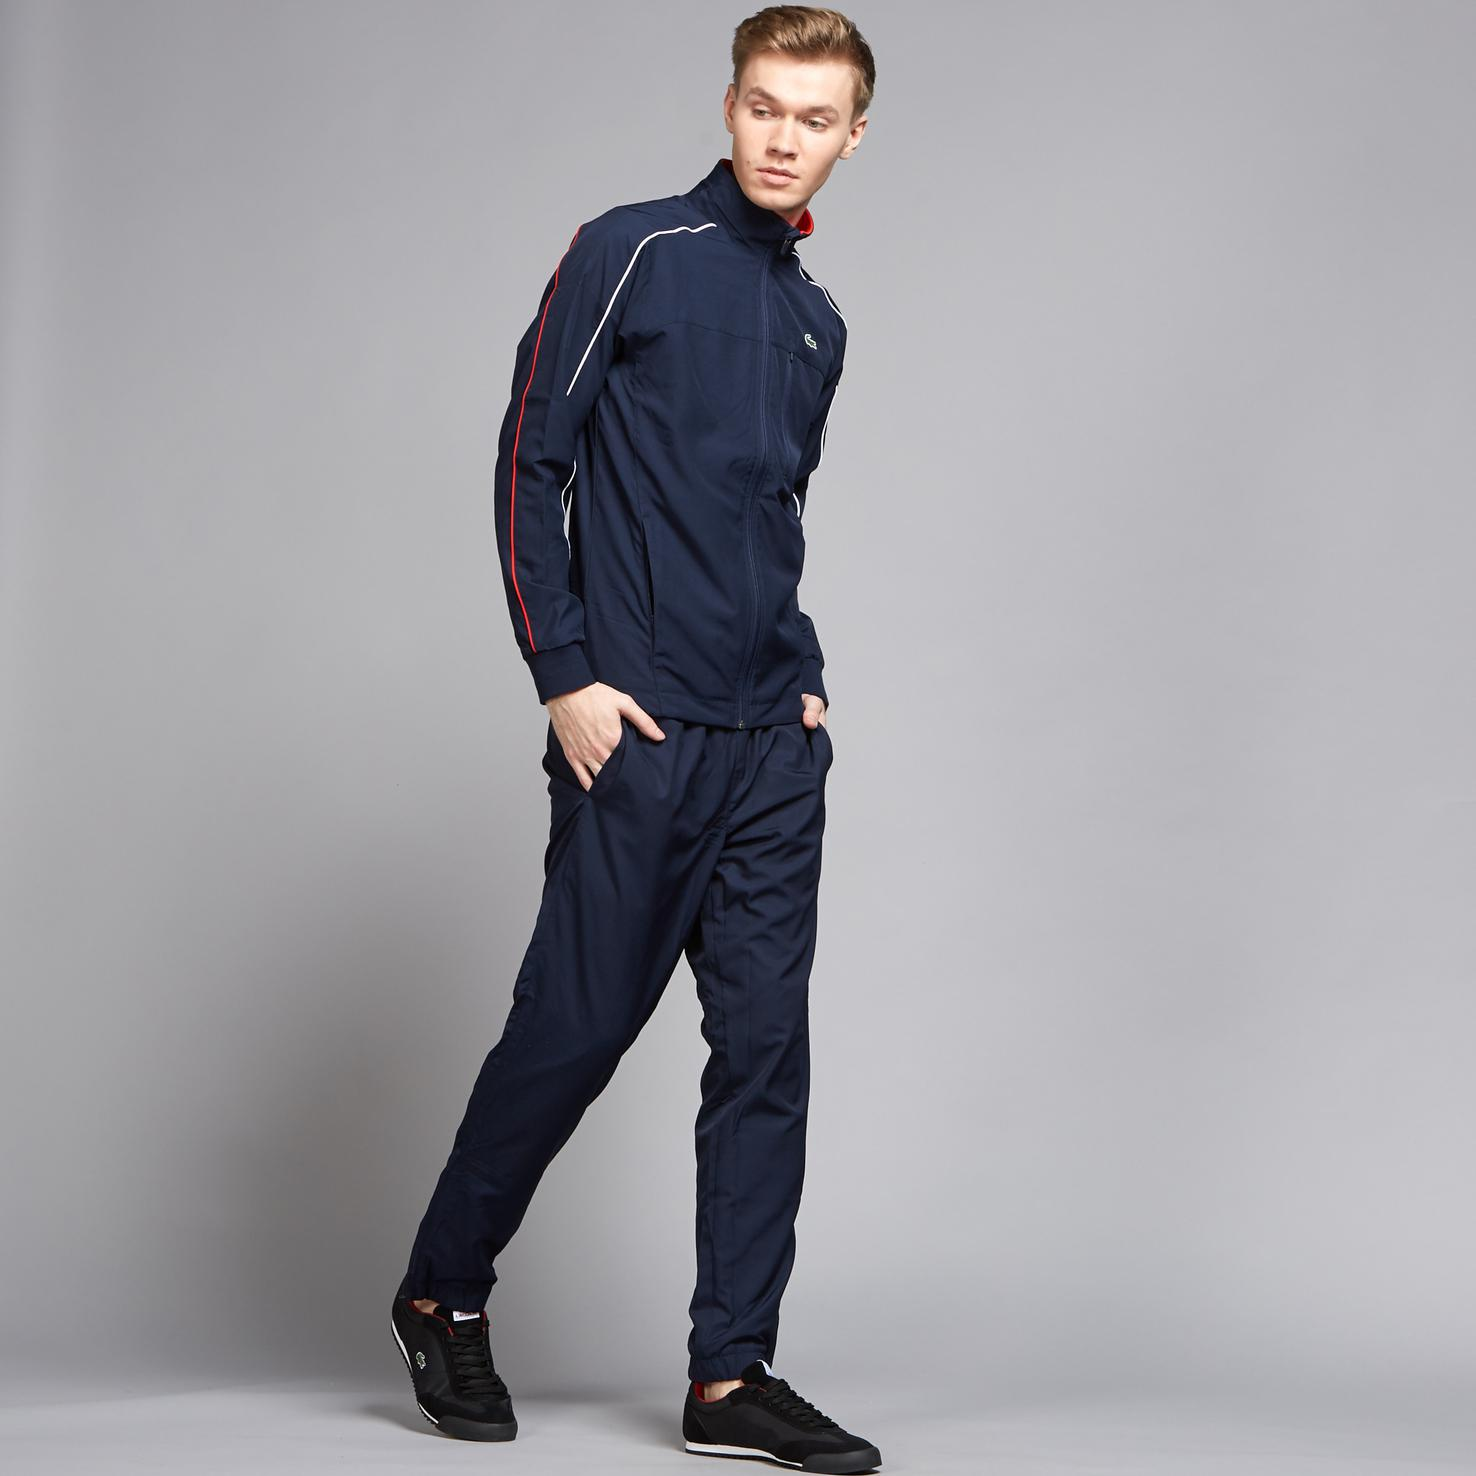 Lacoste Sport Mens Taffeta Tracksuit 1186812 further Stage Roland Garros 2016 Babolat 66799 furthermore Nike Mens Free 5 0 Running Shoes 1187768 additionally 8329 Nike Zoom Vapor X Clay Federer Rf Summer 2018 as well 510979. on padel racket